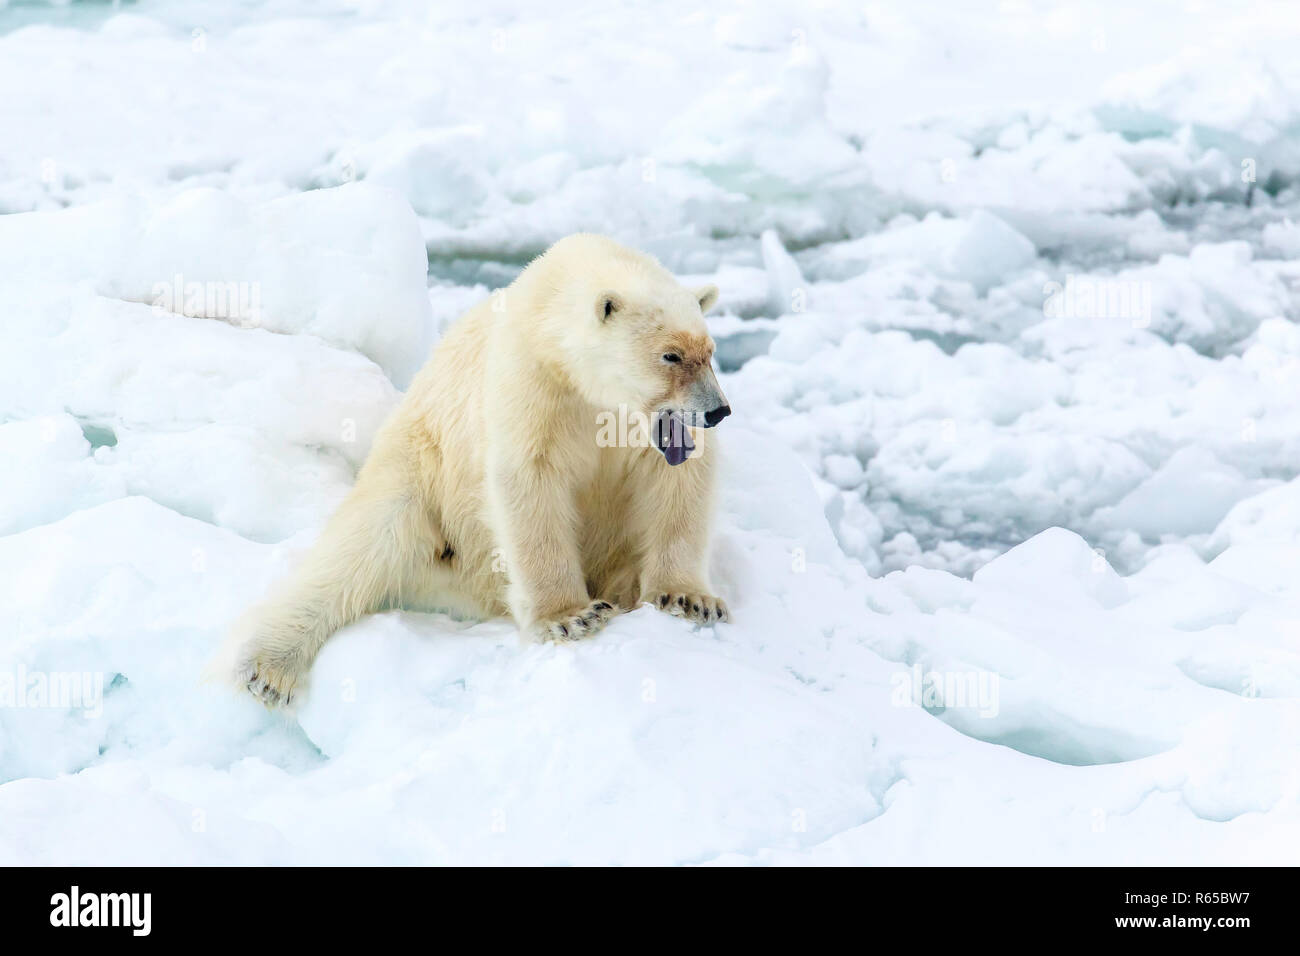 An adult polar bear, Ursus maritimus, with mouth open, showing tounge  Eastern coast of Edgeøya, Svalbard, Norway. - Stock Image